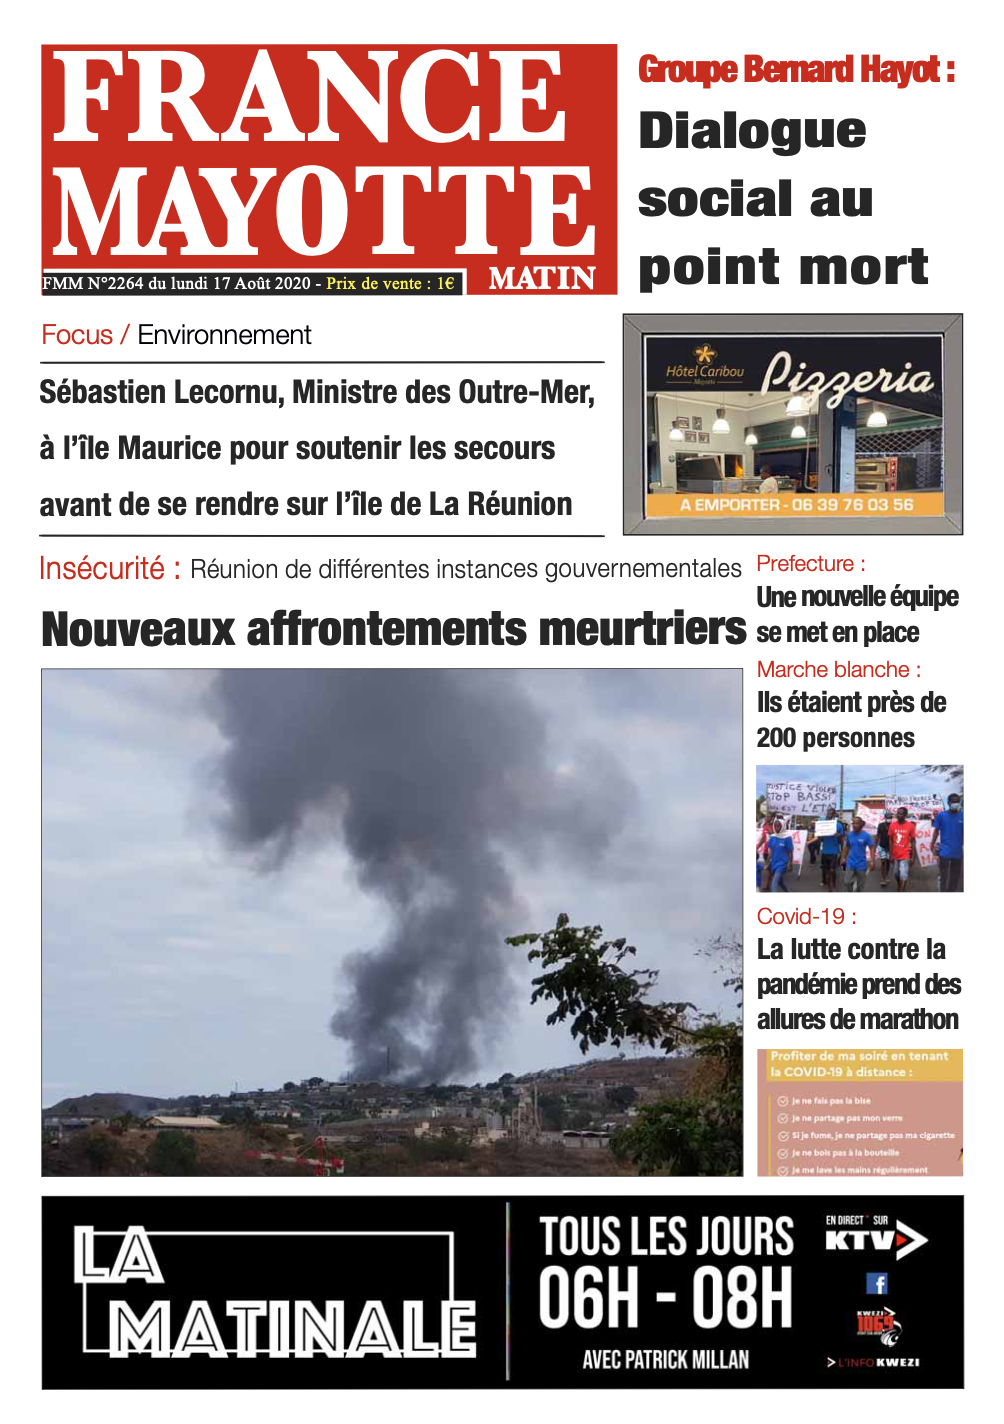 France Mayotte Lundi 17 août 2020